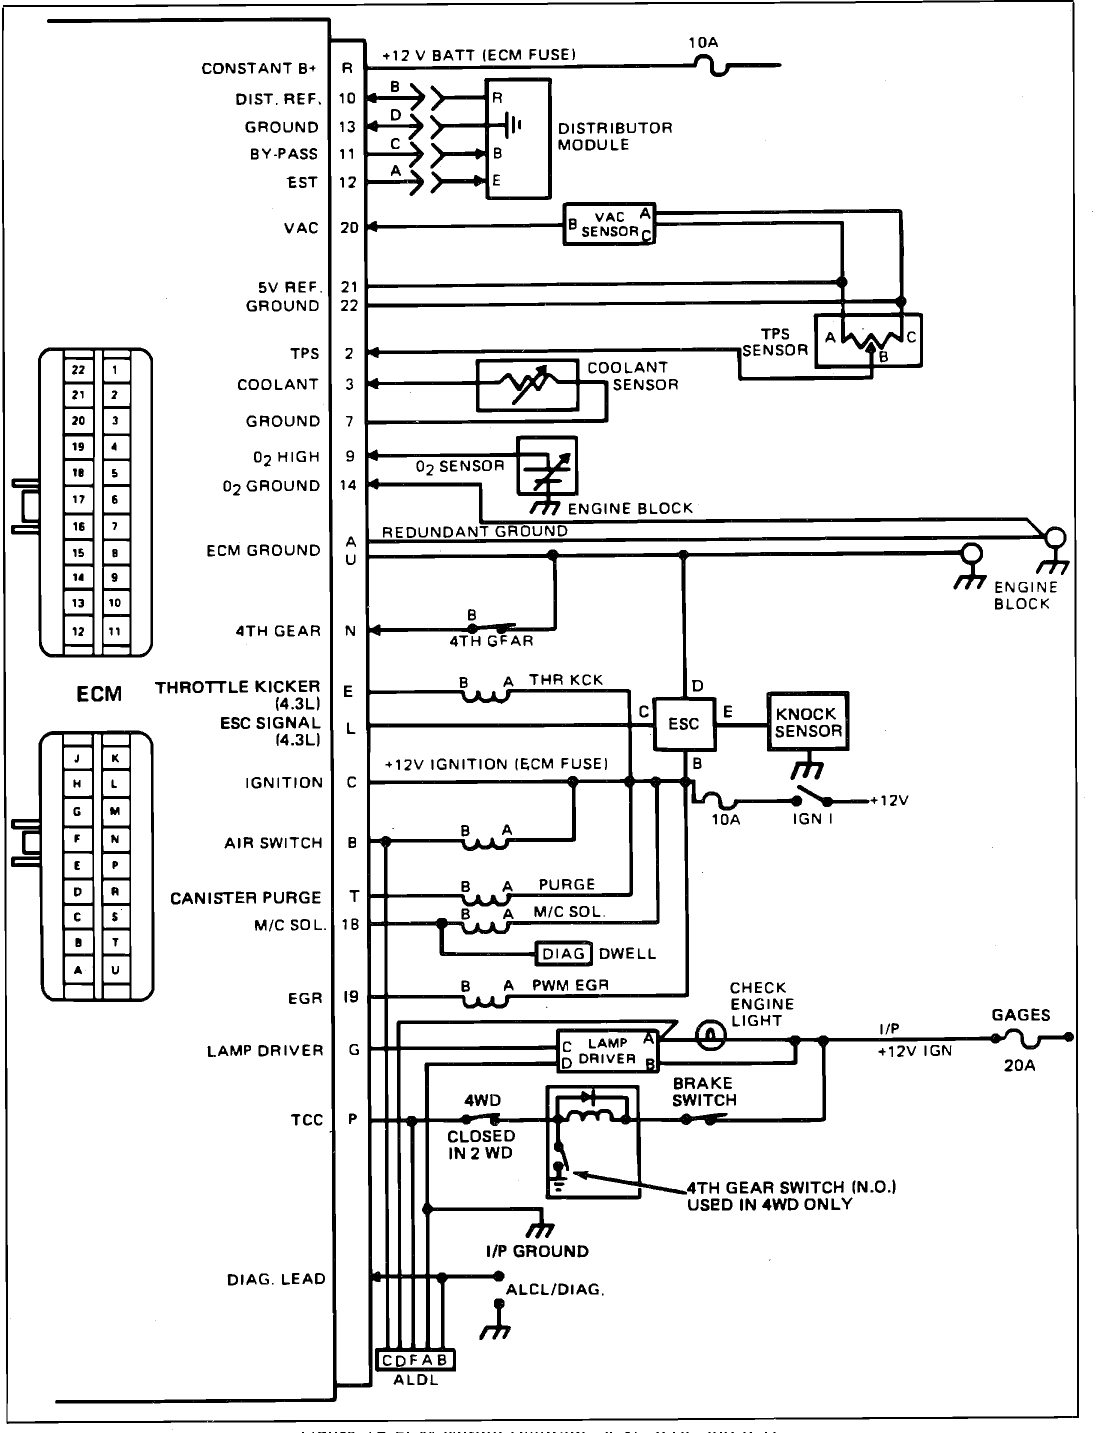 hight resolution of i need a fuse box diagram with wiring colors